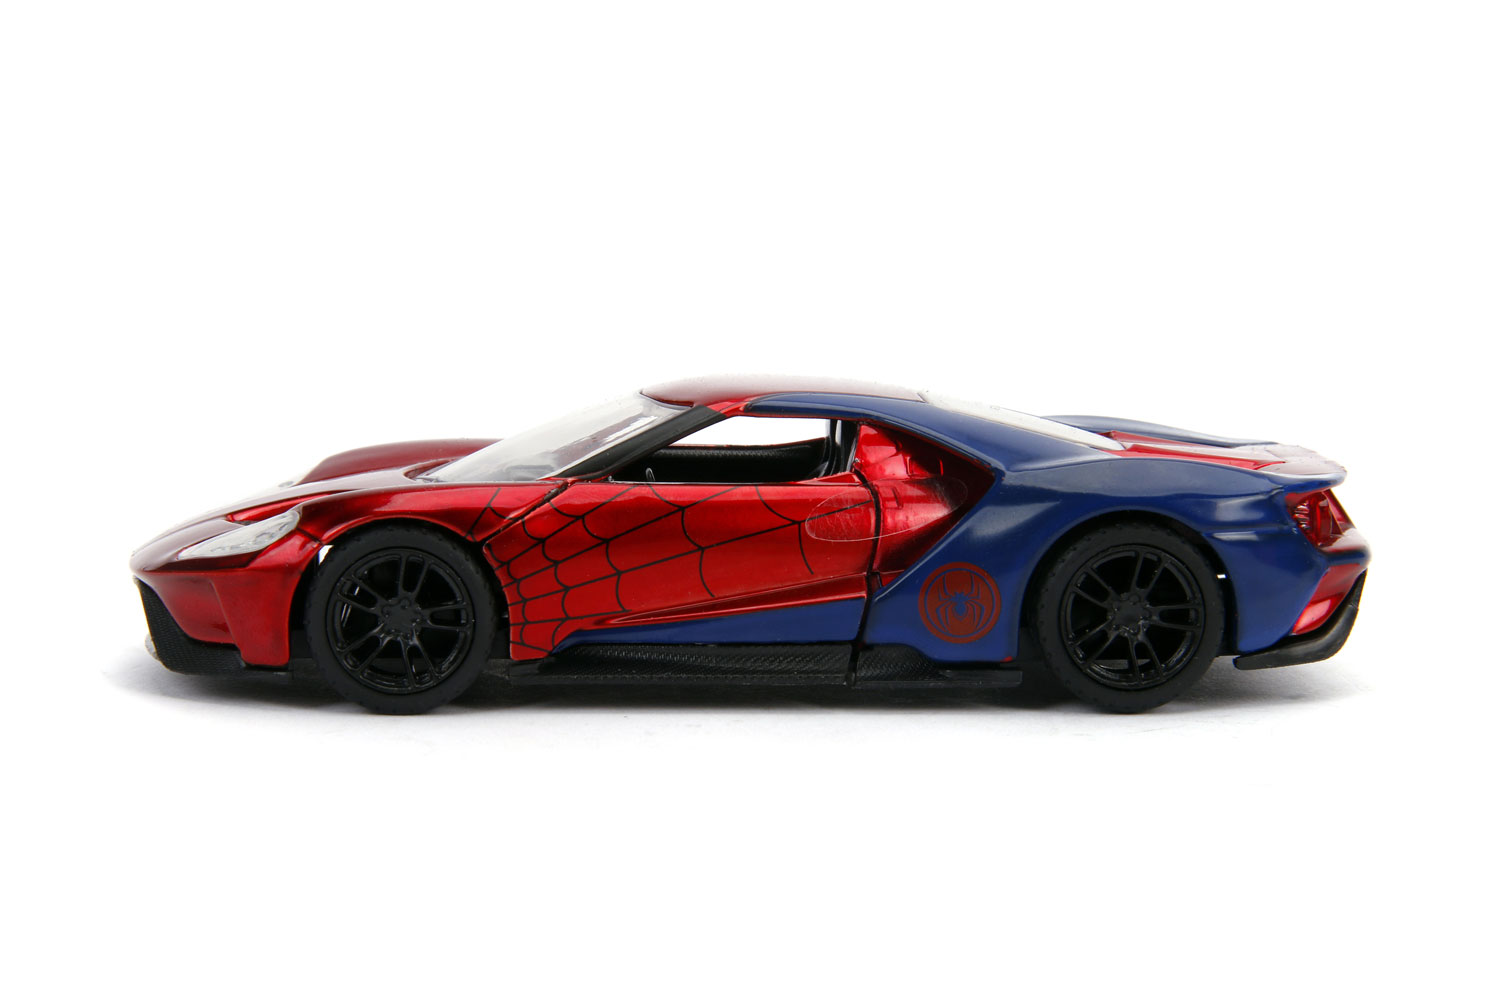 Marvel Vehicle: Spider-Man 2017 Ford GT  (1/32 scale) - Jada Toys, Inc